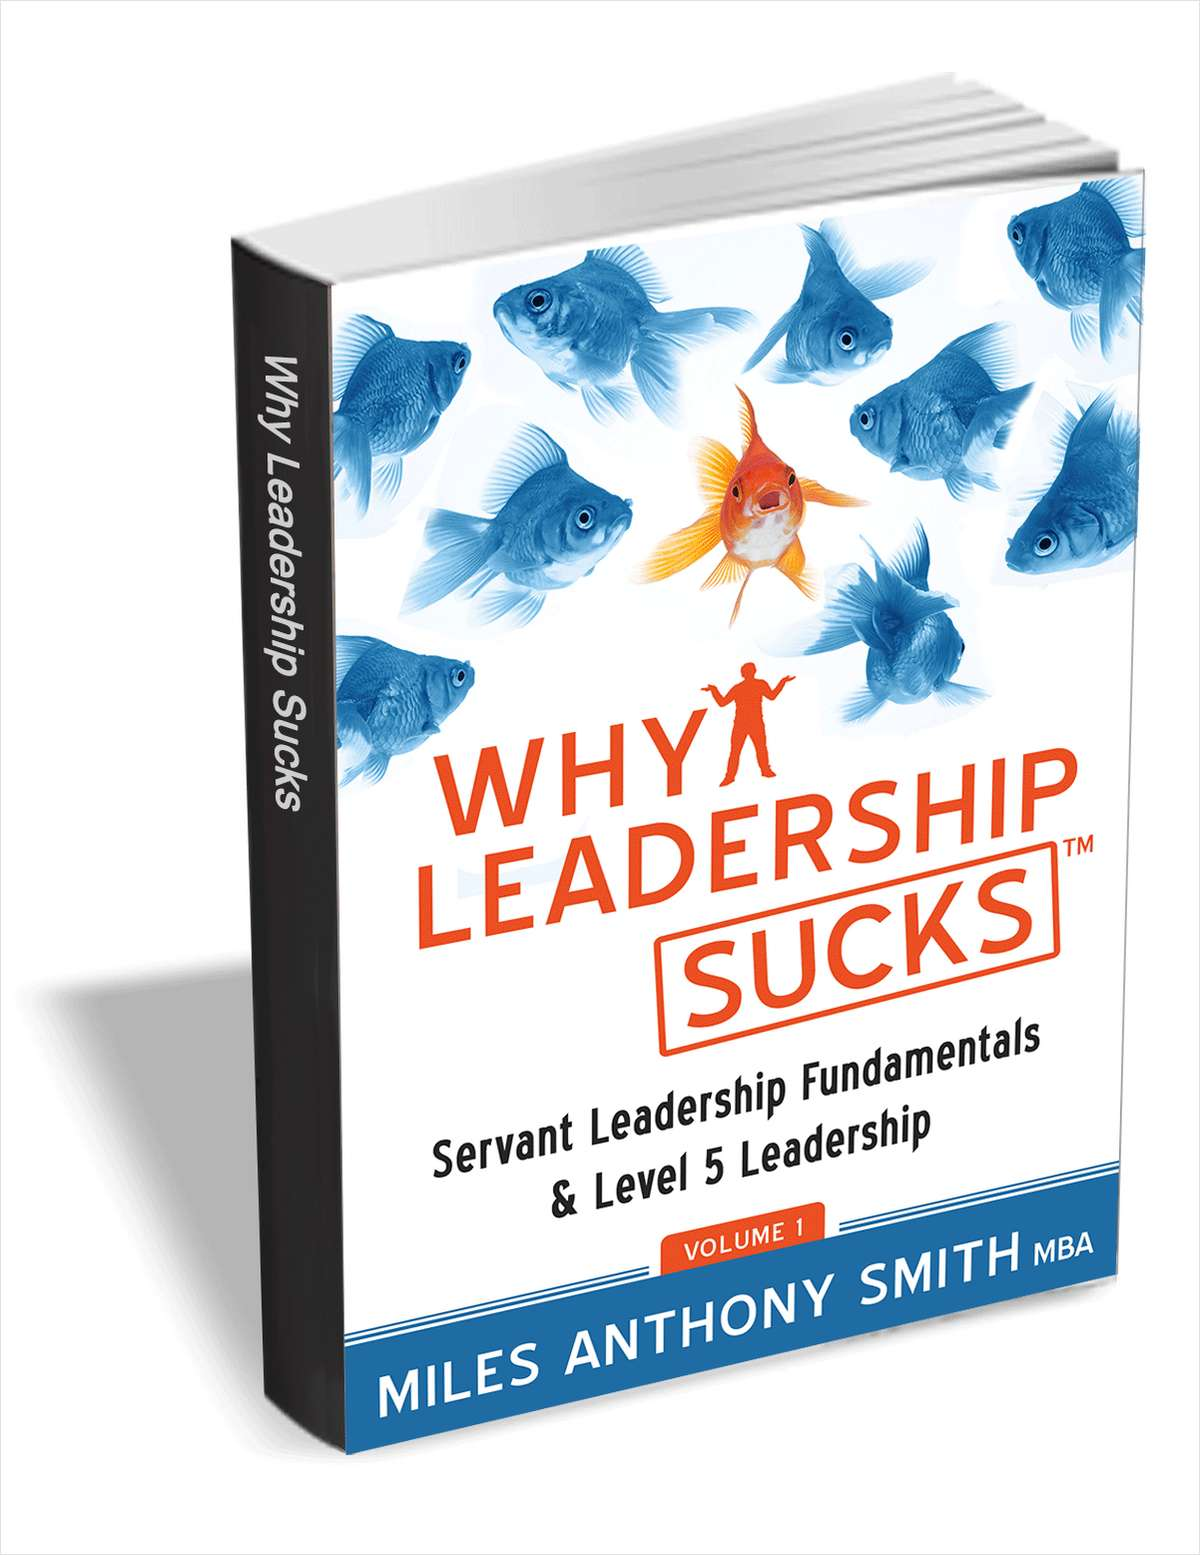 Why Leadership Sucks: The Fundamentals of Level 5 Leadership and Servant Leadership (Free eBook) A $14.95 Value